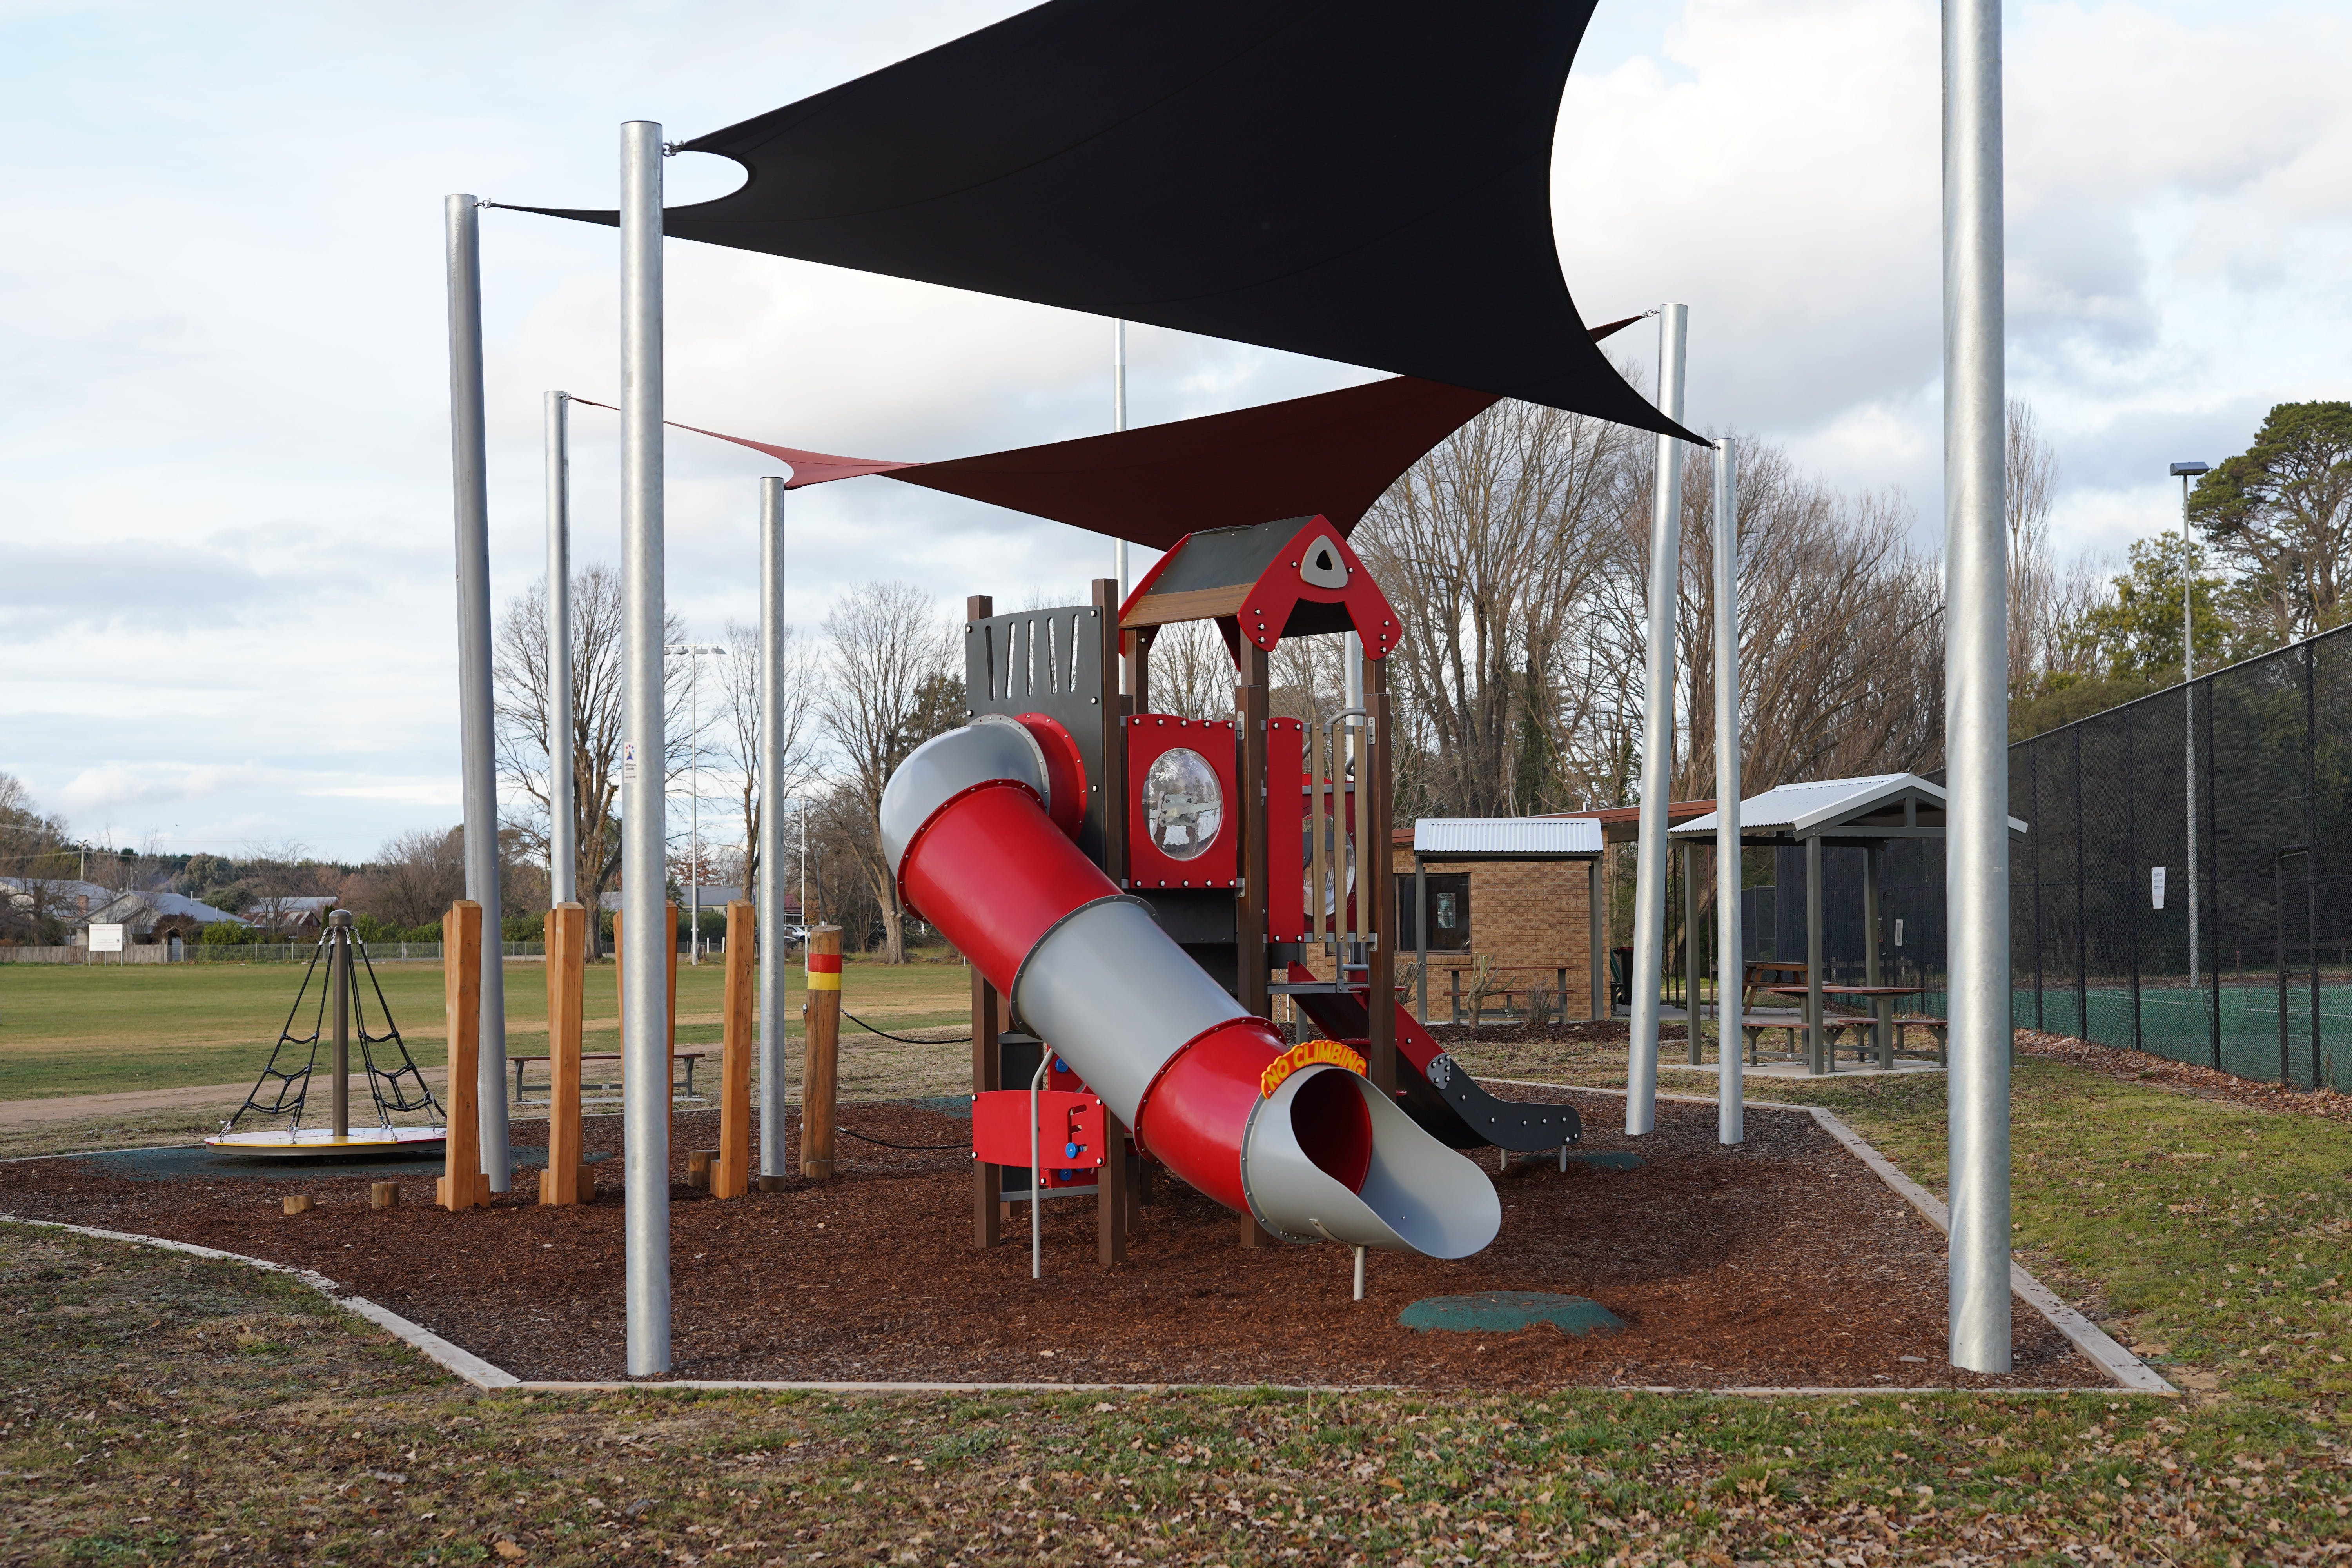 Braidwood Recreation Grounds and Playground - Melbourne Tourism